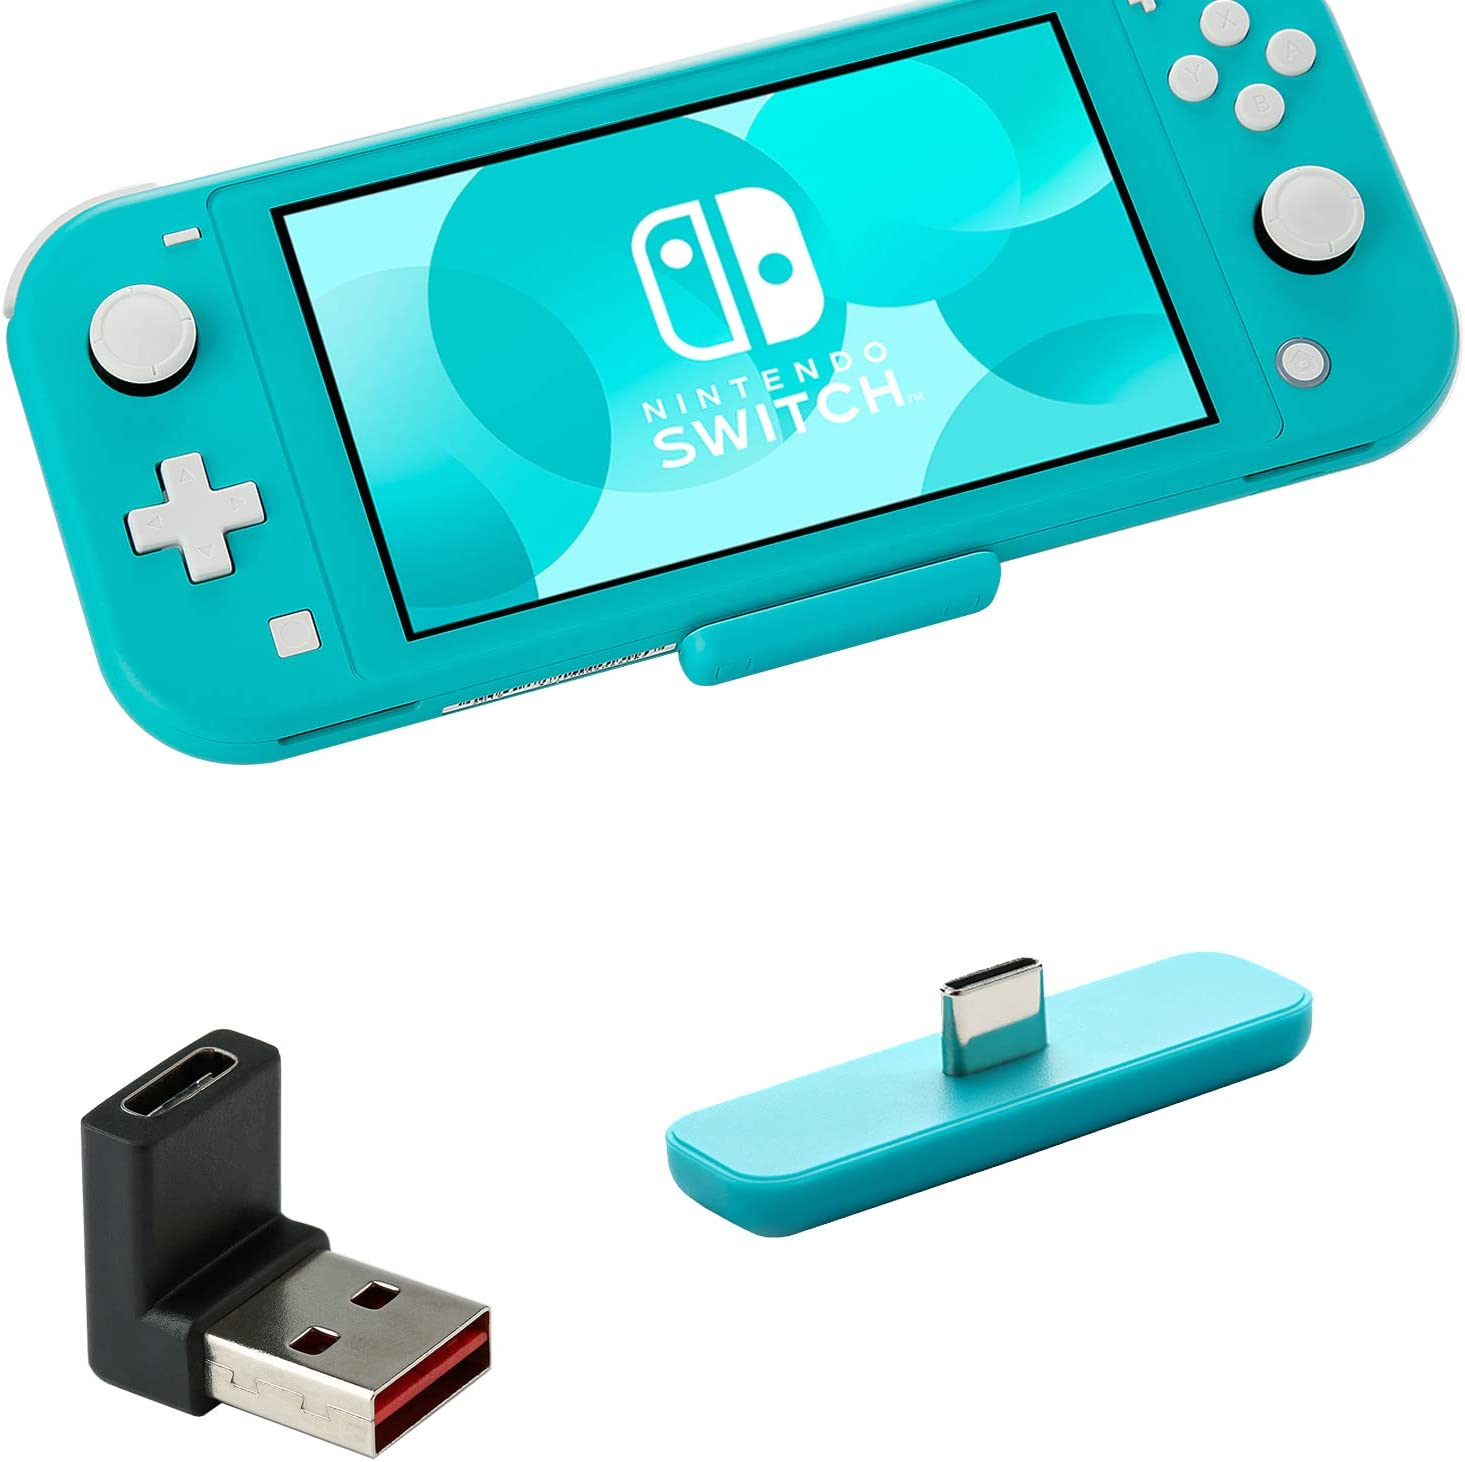 Amazon Com Gulikit Route Air Bluetooth Adapter For Nintendo Switch Lite Ps4 Pc Dual Stream Bluetooth Wireless Audio Transmitter With Aptx Low Latency Connect Your Airpods Bluetooth Speakers Headphones Blue Home